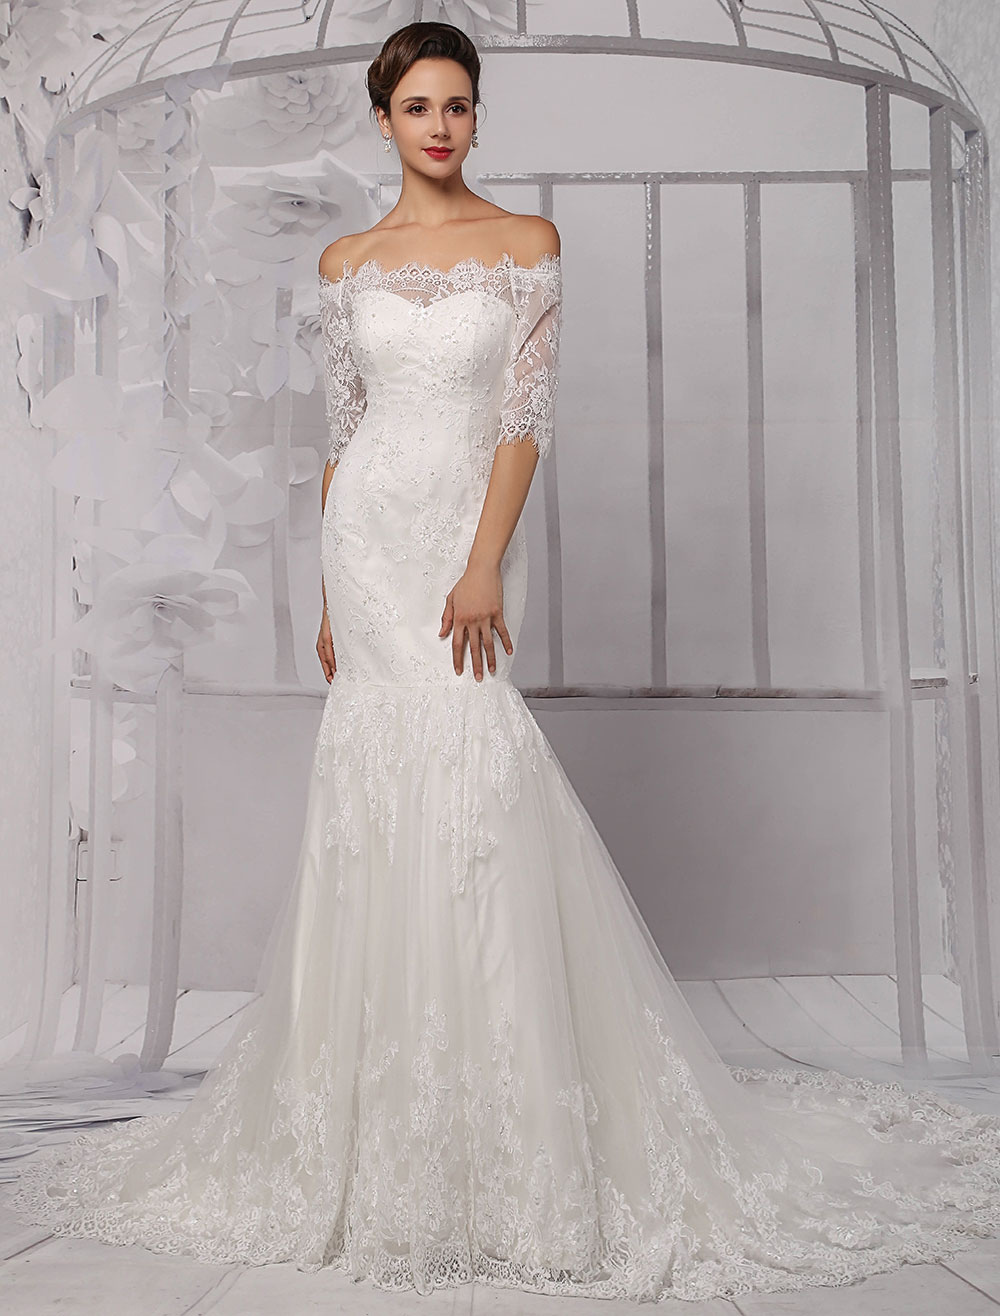 Half sleeve off the shoulder lace wedding dress in trumpet for Lace off the shoulder wedding dresses